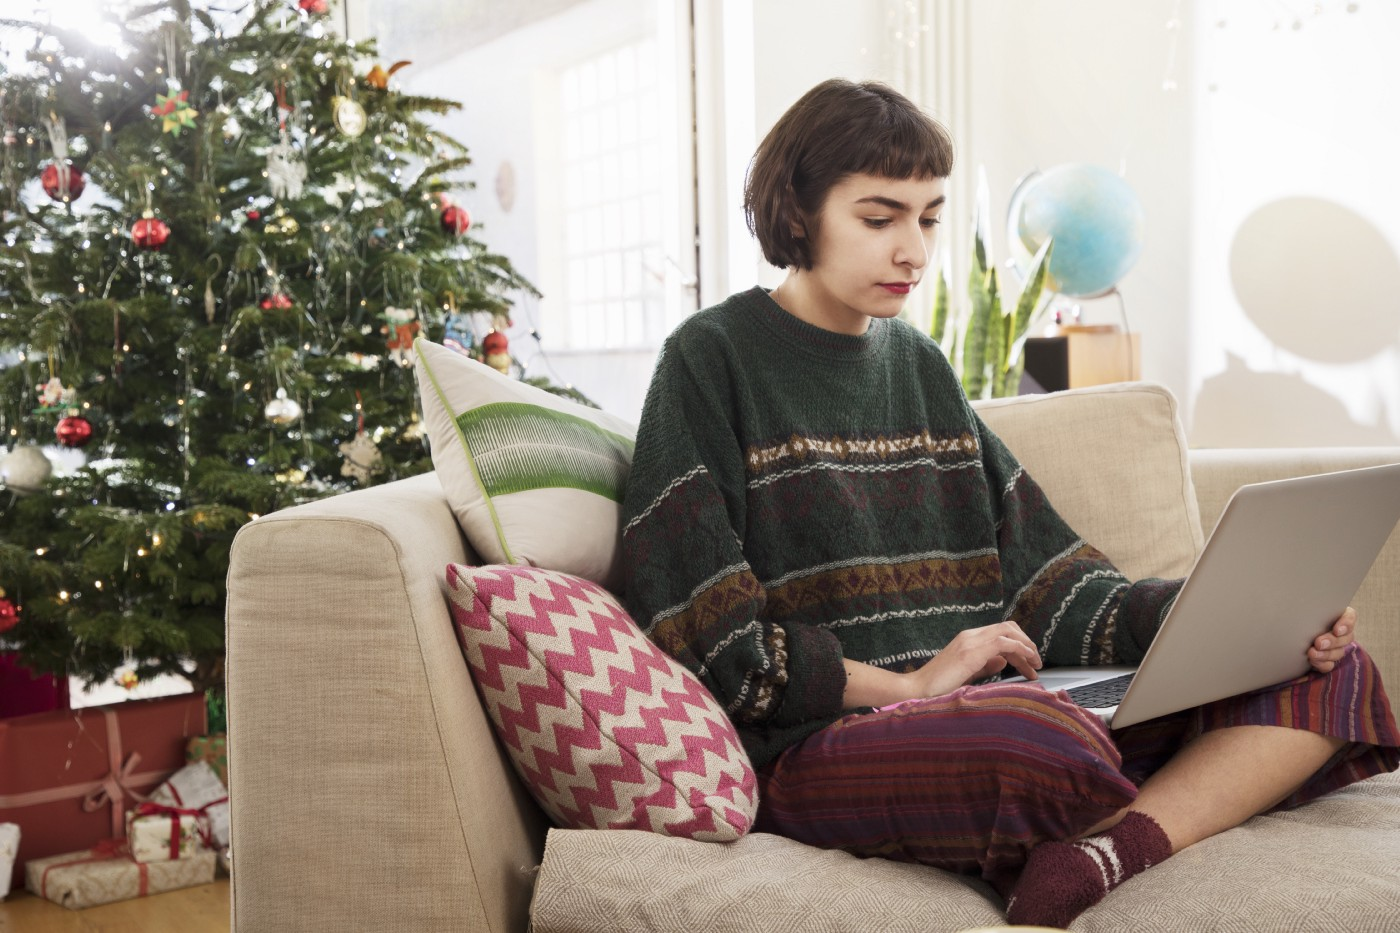 A person with short bobbed hair sitting on a couch in front of a Christmas tree, working on a laptop.